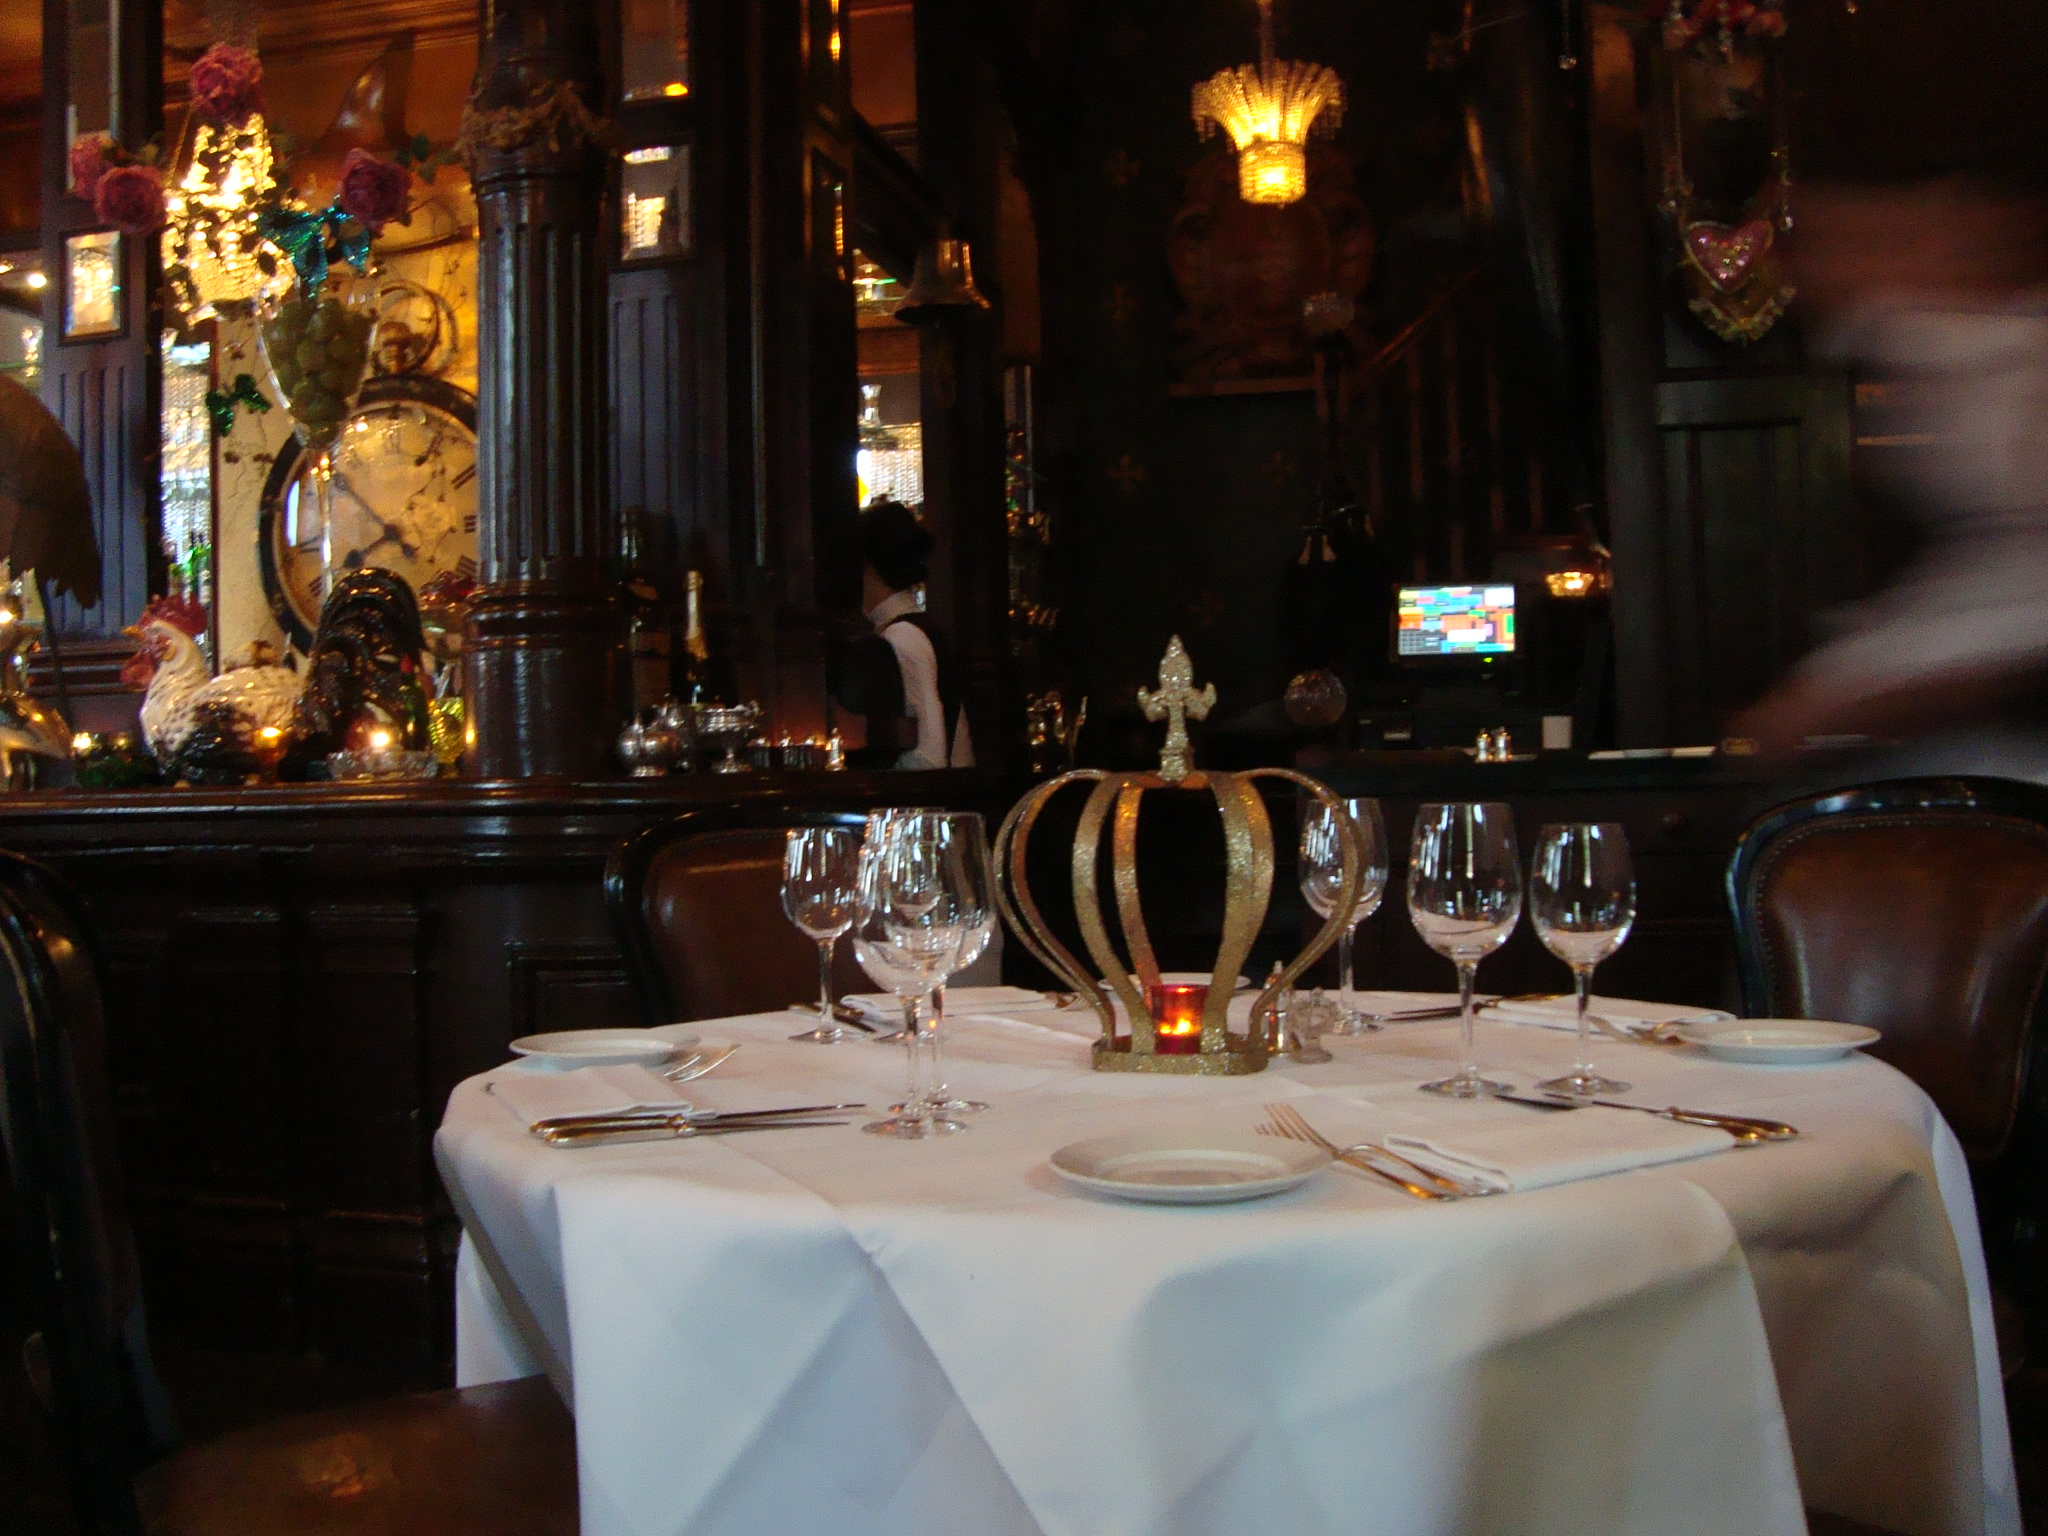 Les-Trois-Garcons-restaurant-table-London